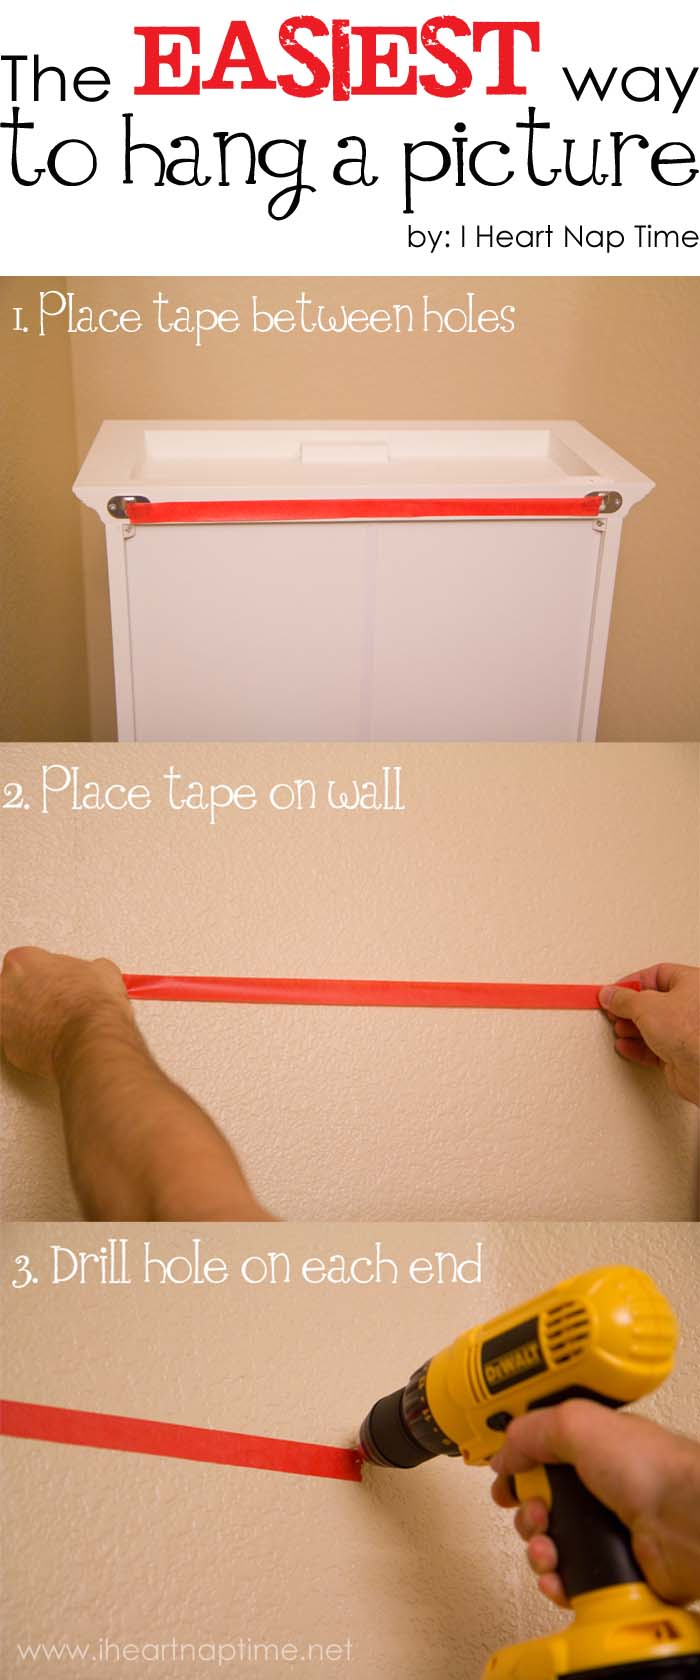 how-to-hang-a-picture